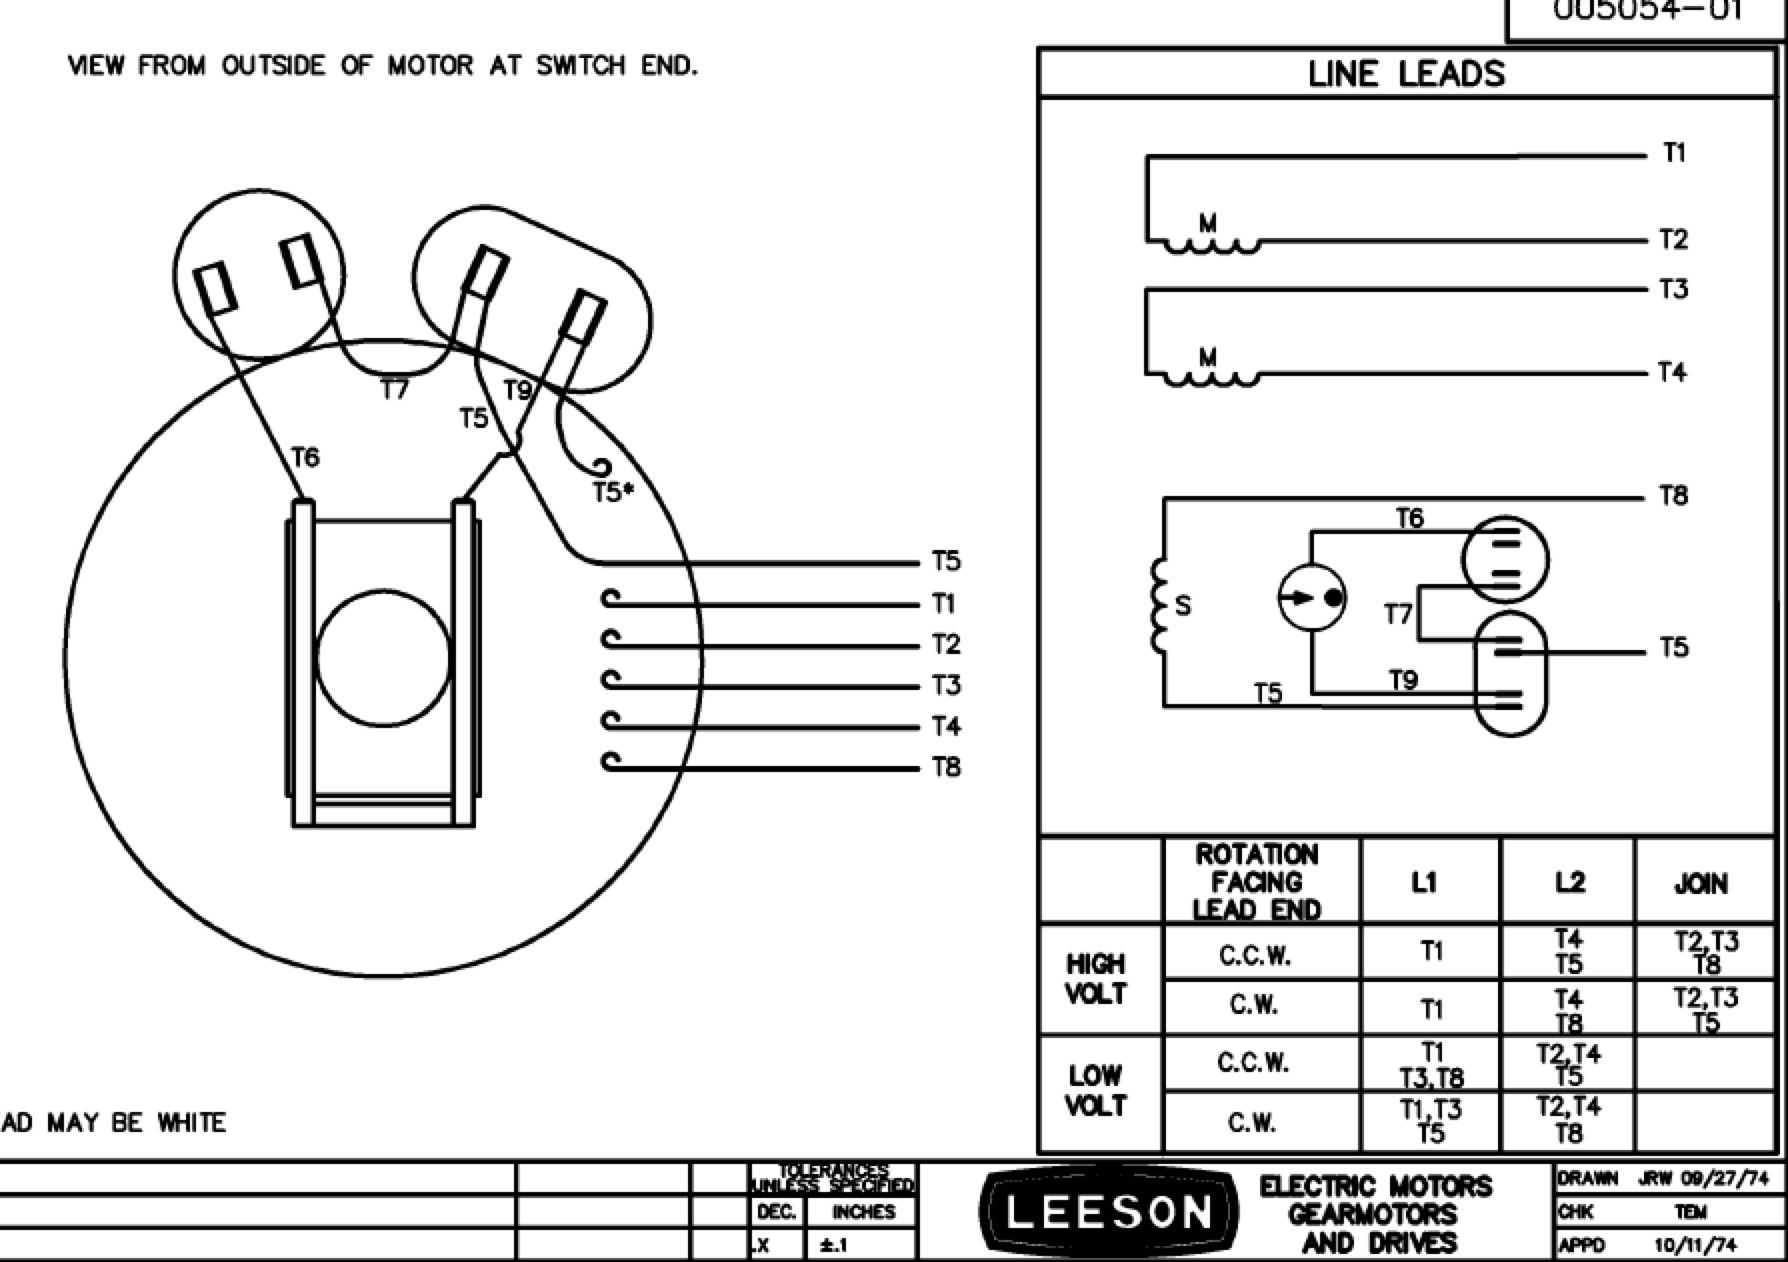 208v single phase wiring diagram cause and effect venn 3 to 240v current transformer